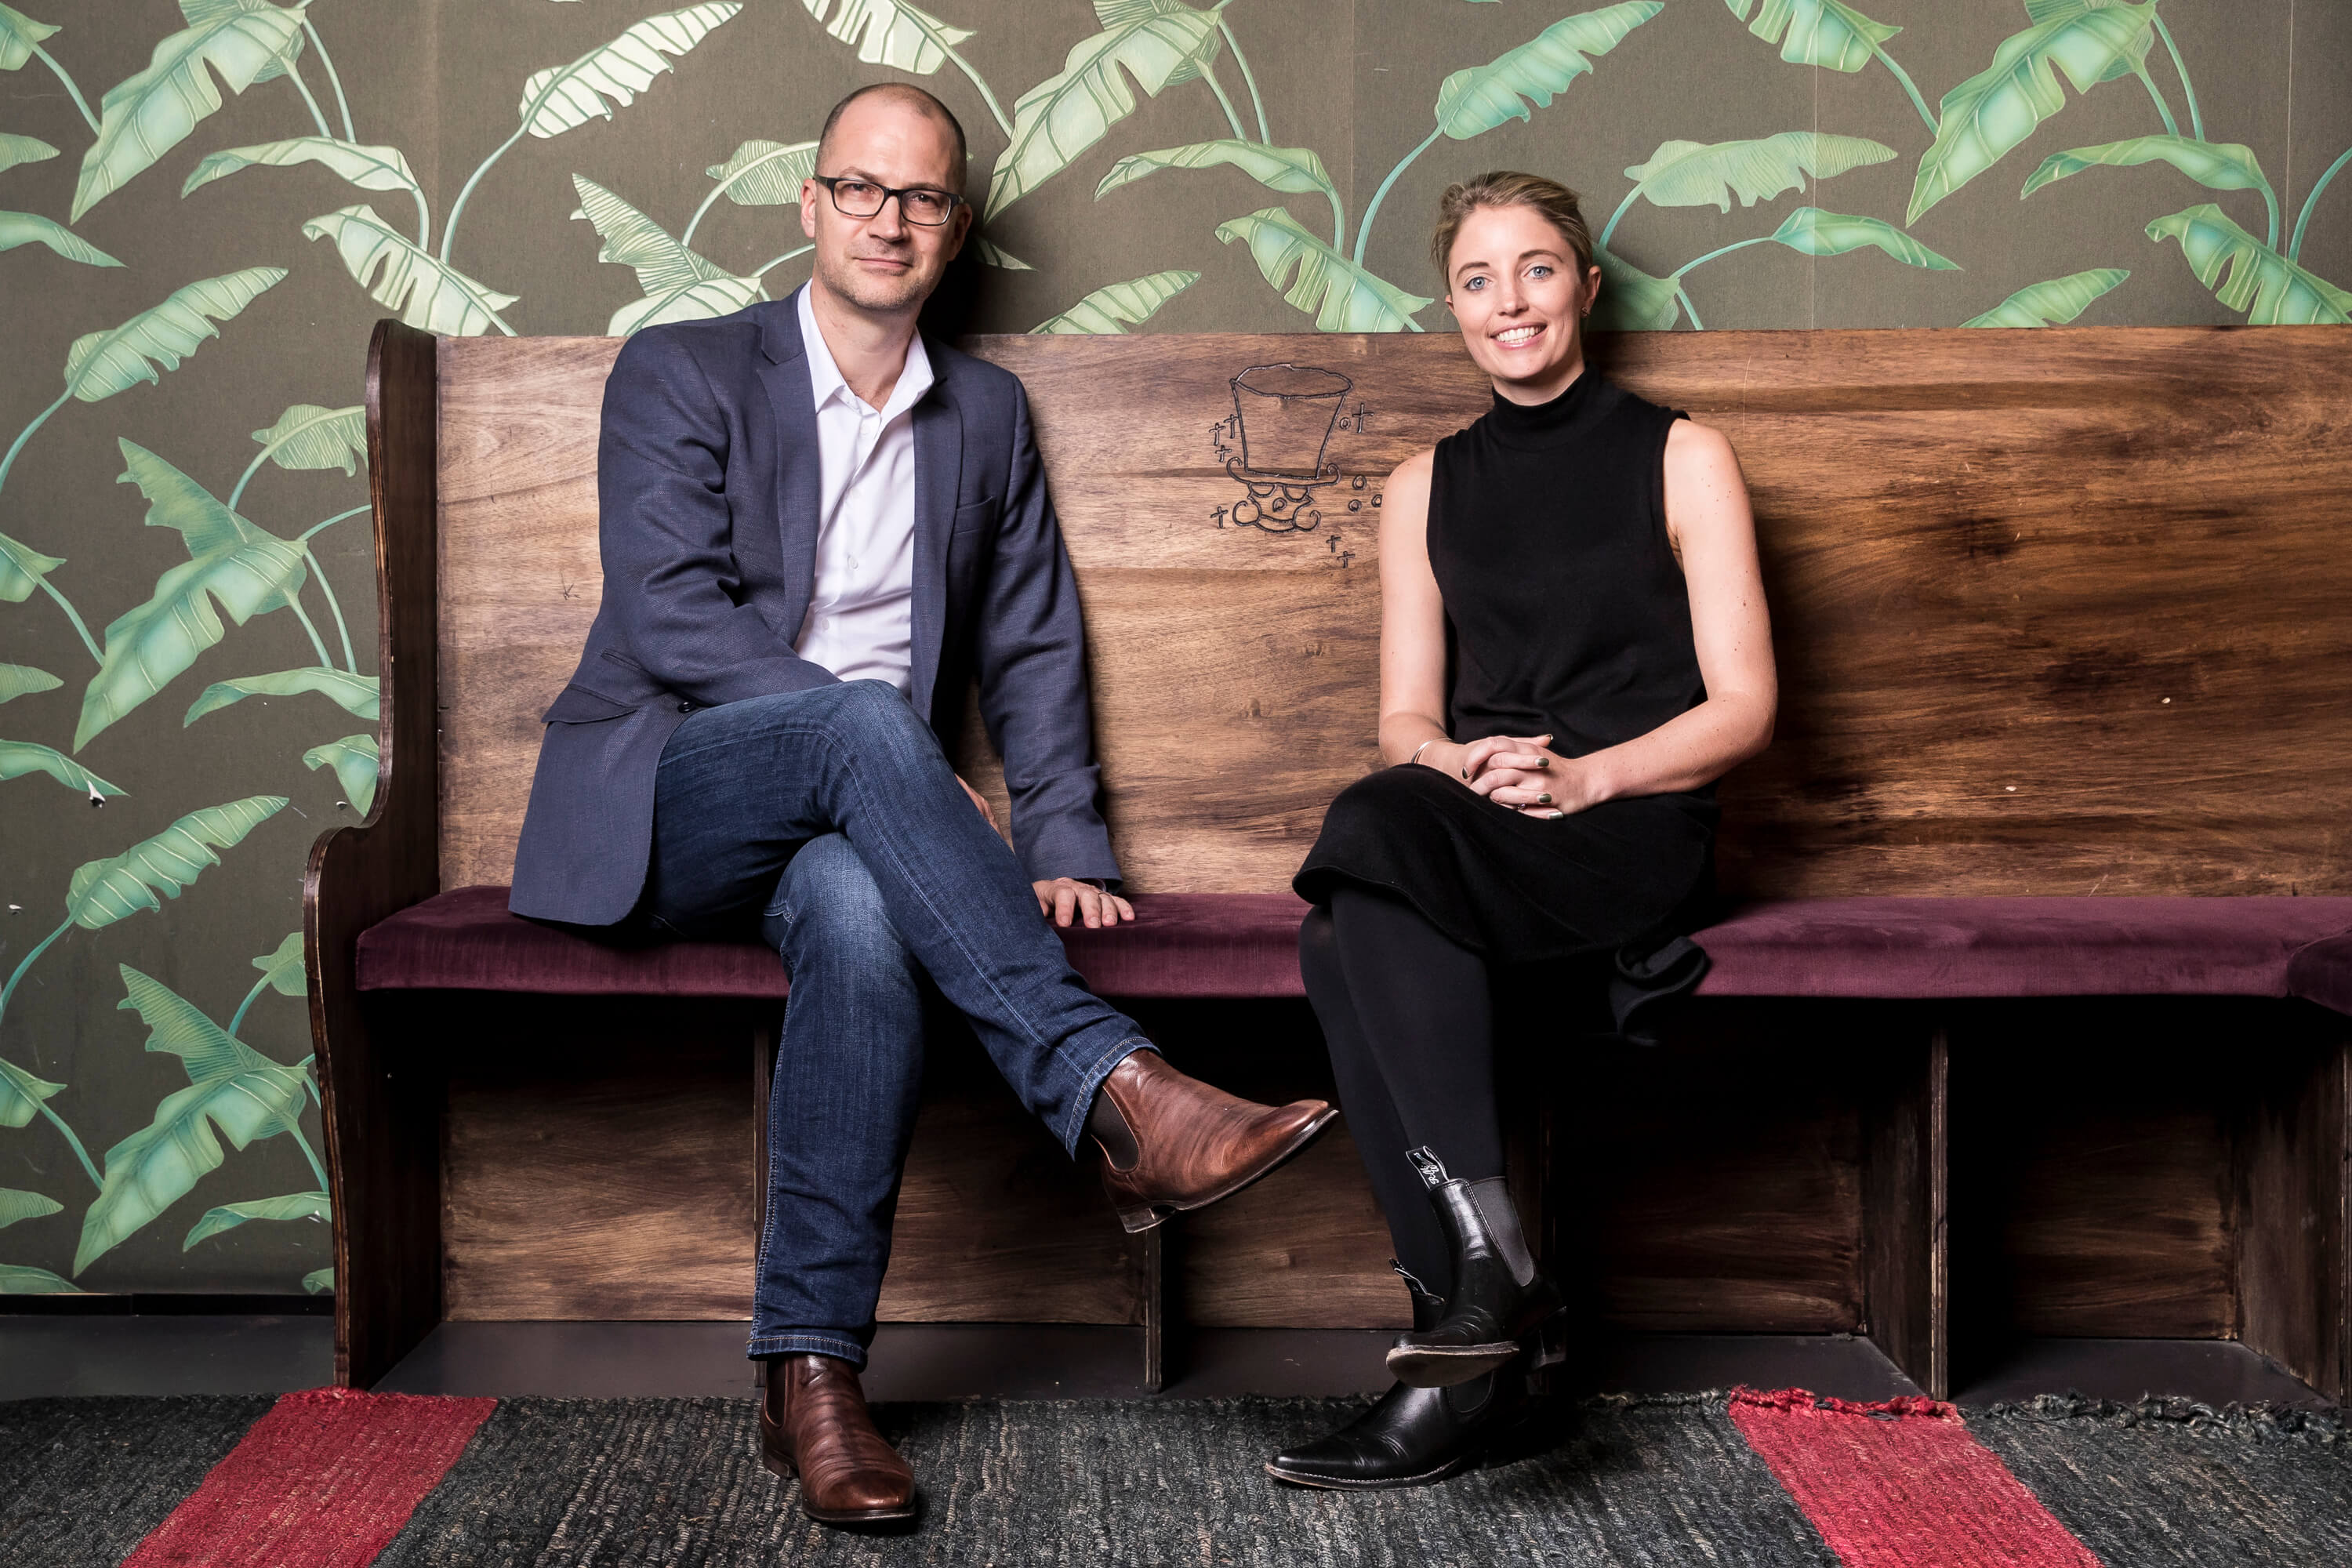 Amicus Digital founders Blair Cooke and Jessie Mitchell